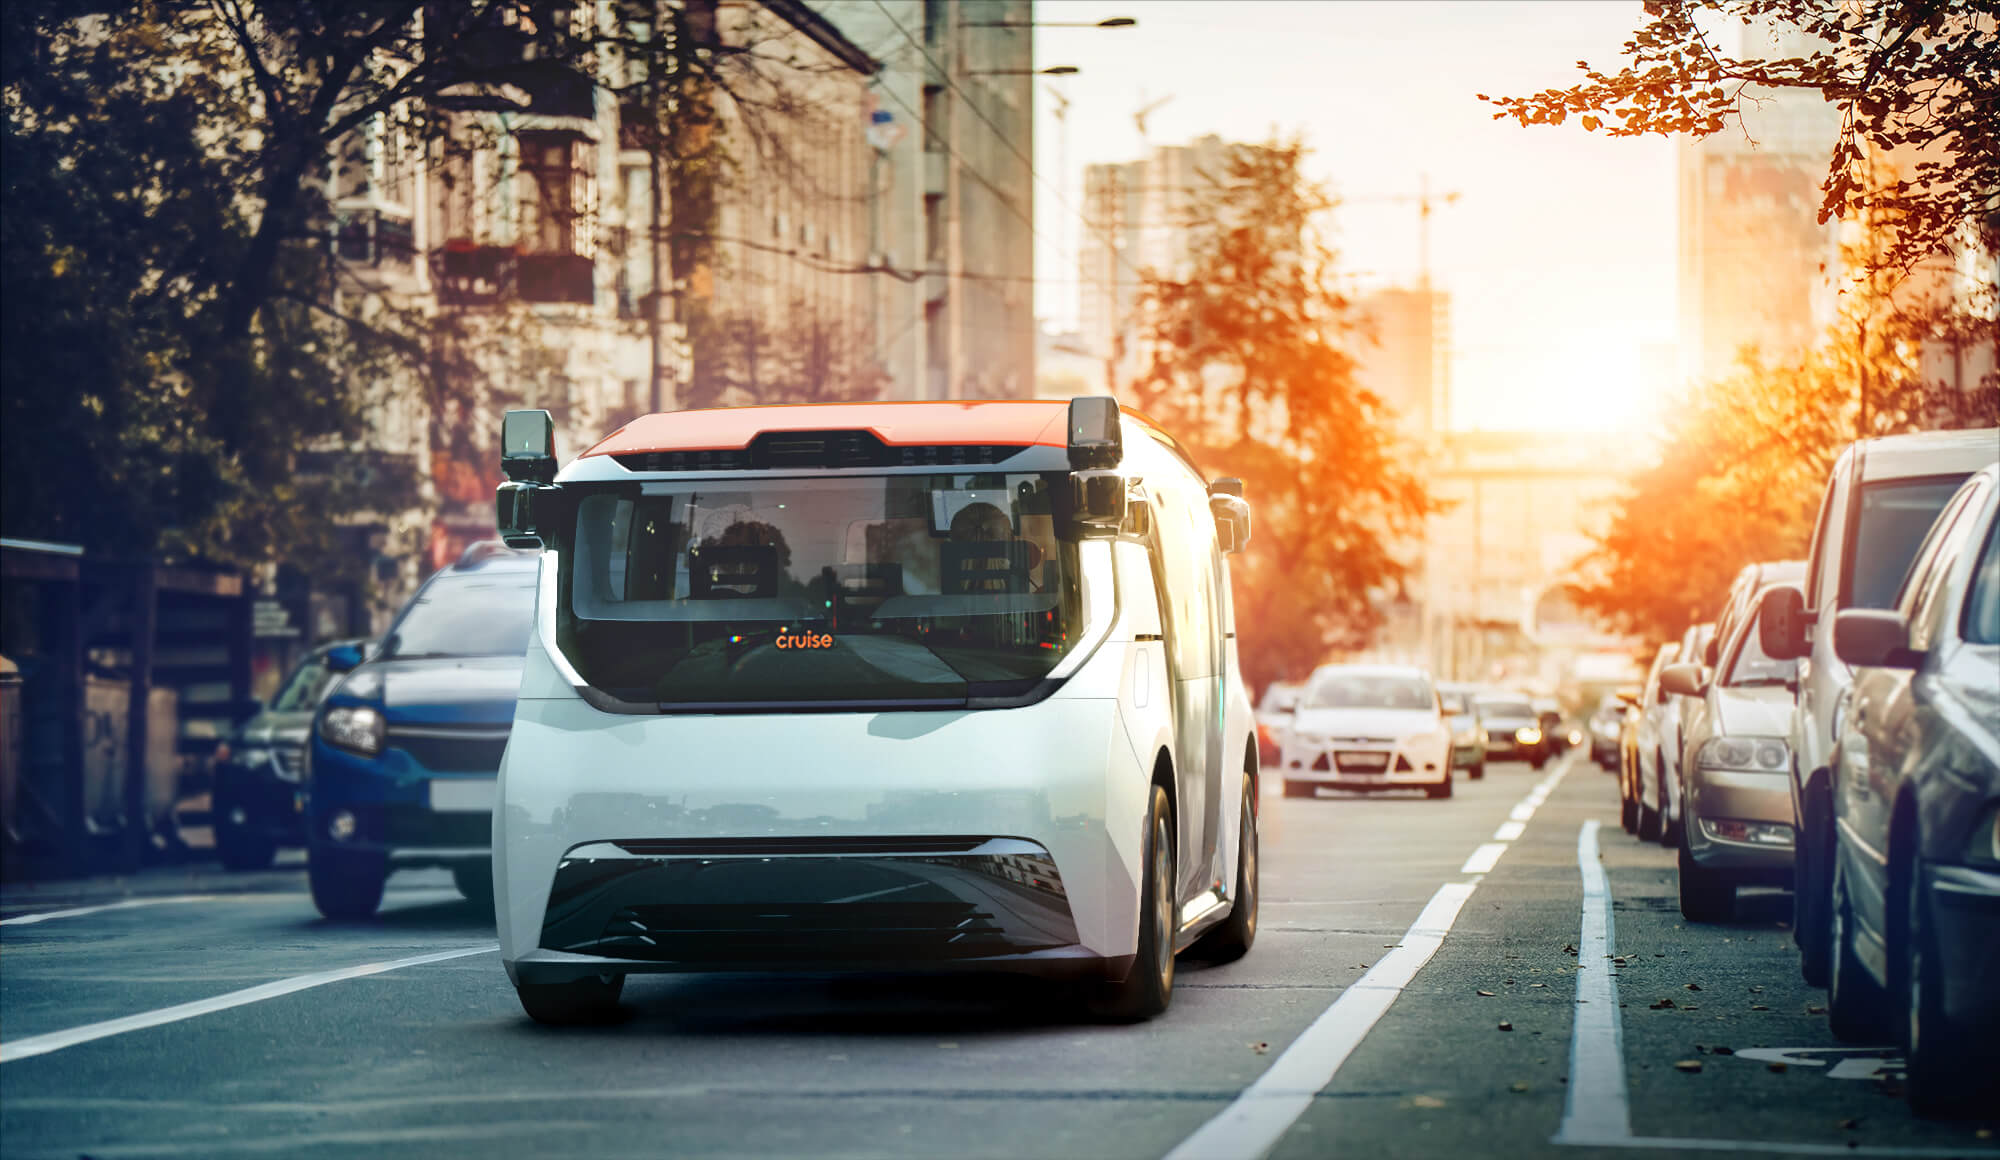 Cruise's self-driving electric shuttle is purpose built for ridesharing